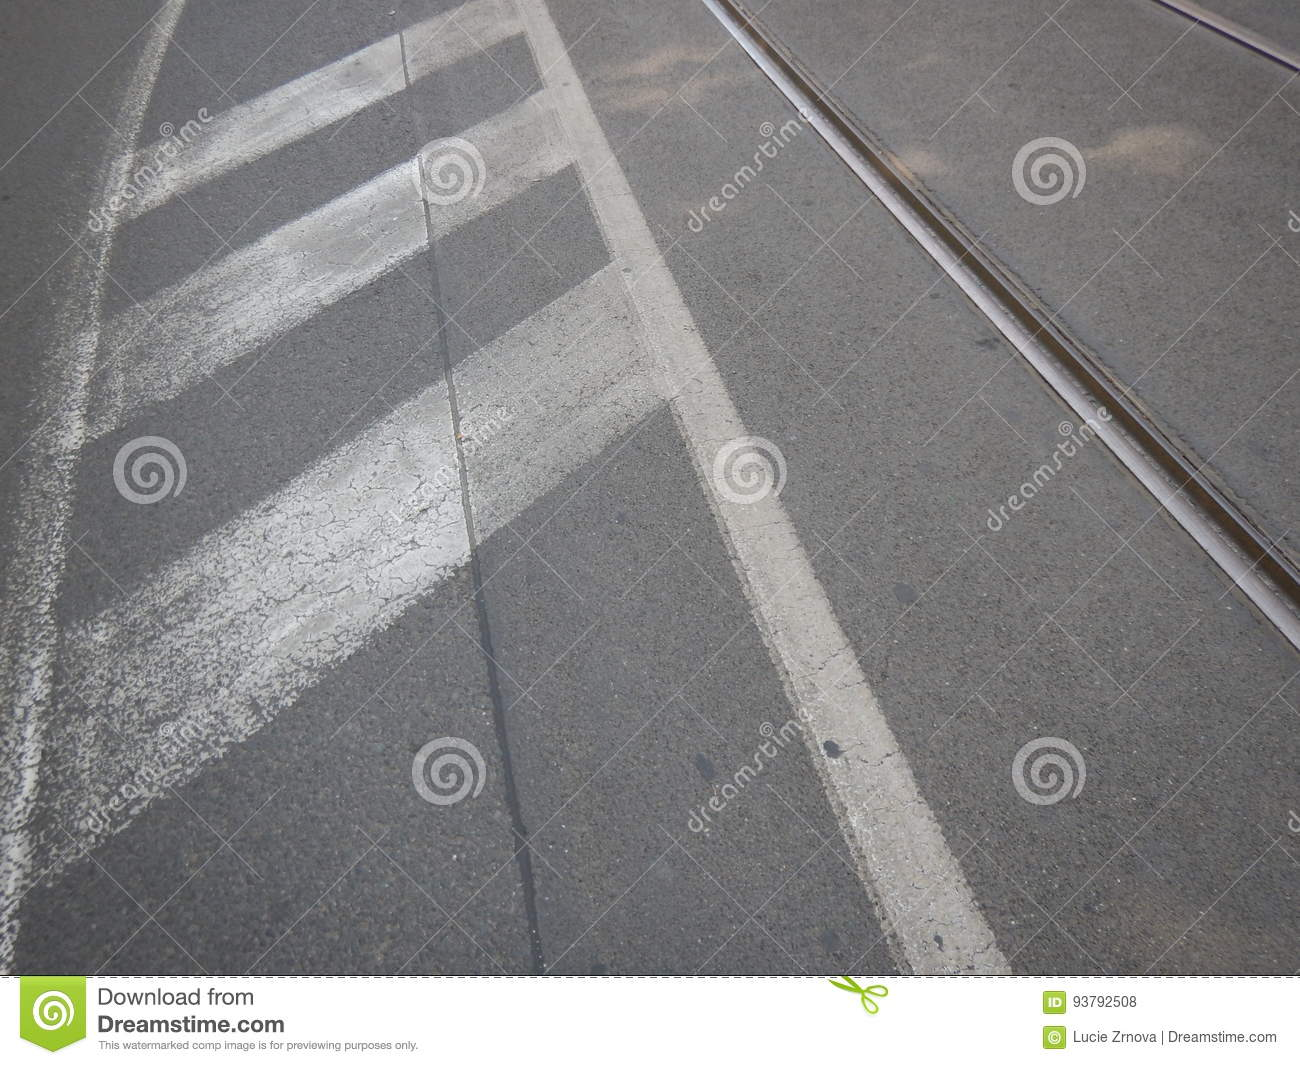 White line on an asphalted road